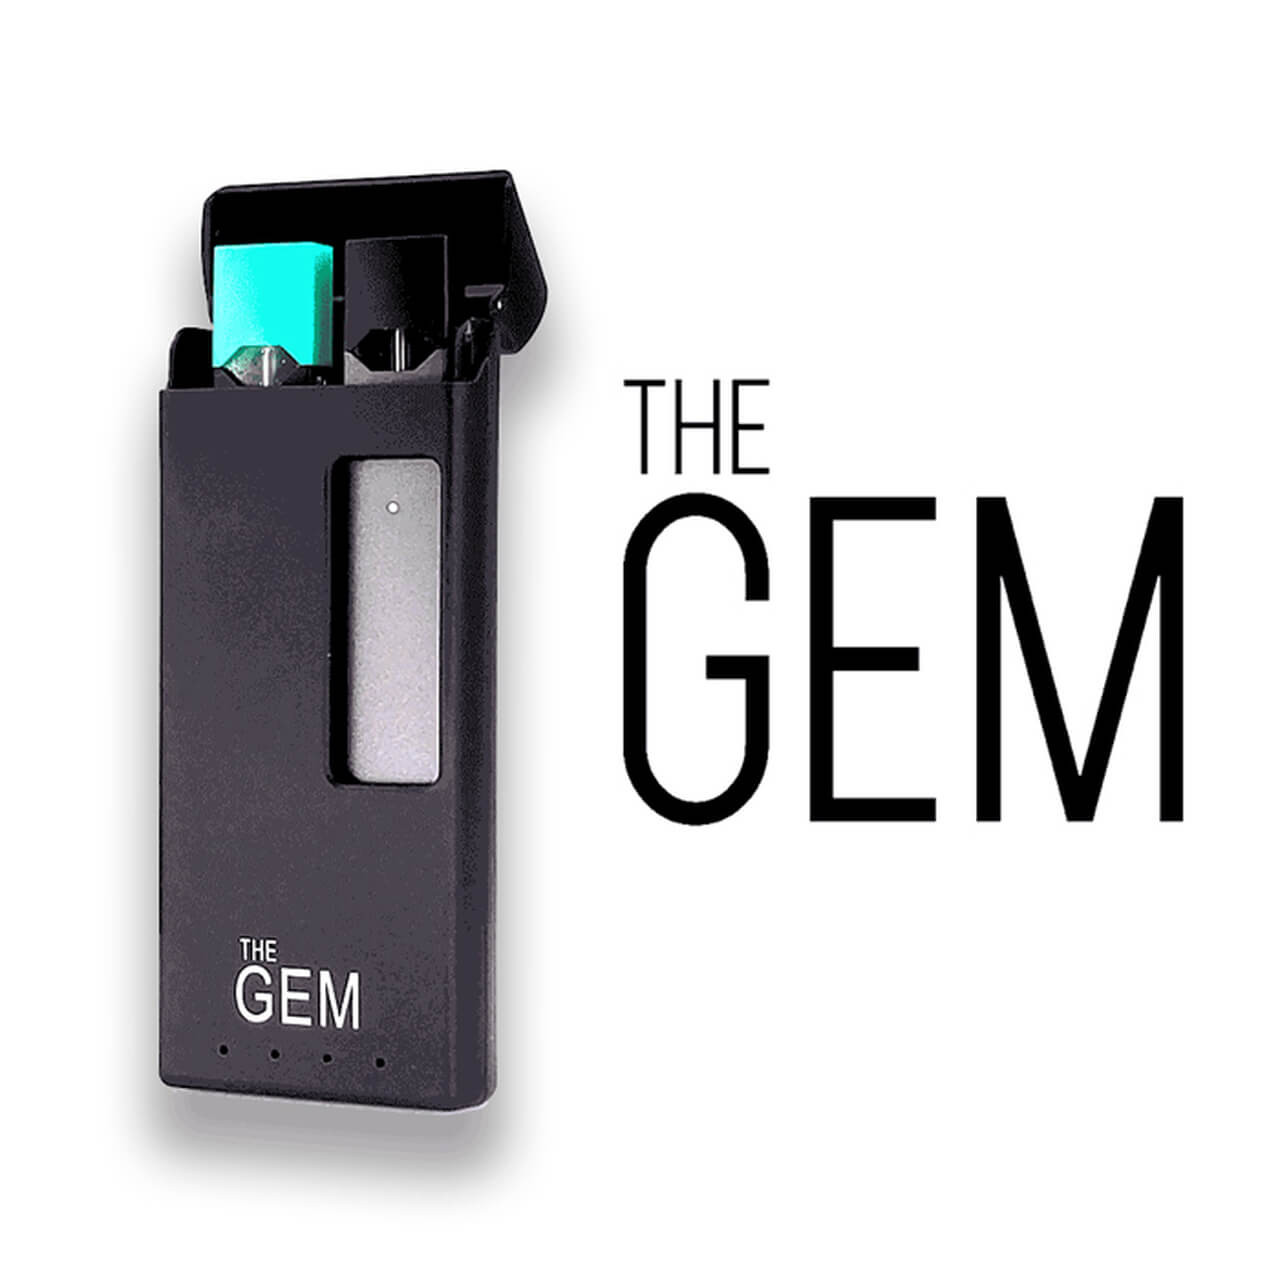 GEM Portable Charger, JUUL Charging Case - JUUL Battery Case